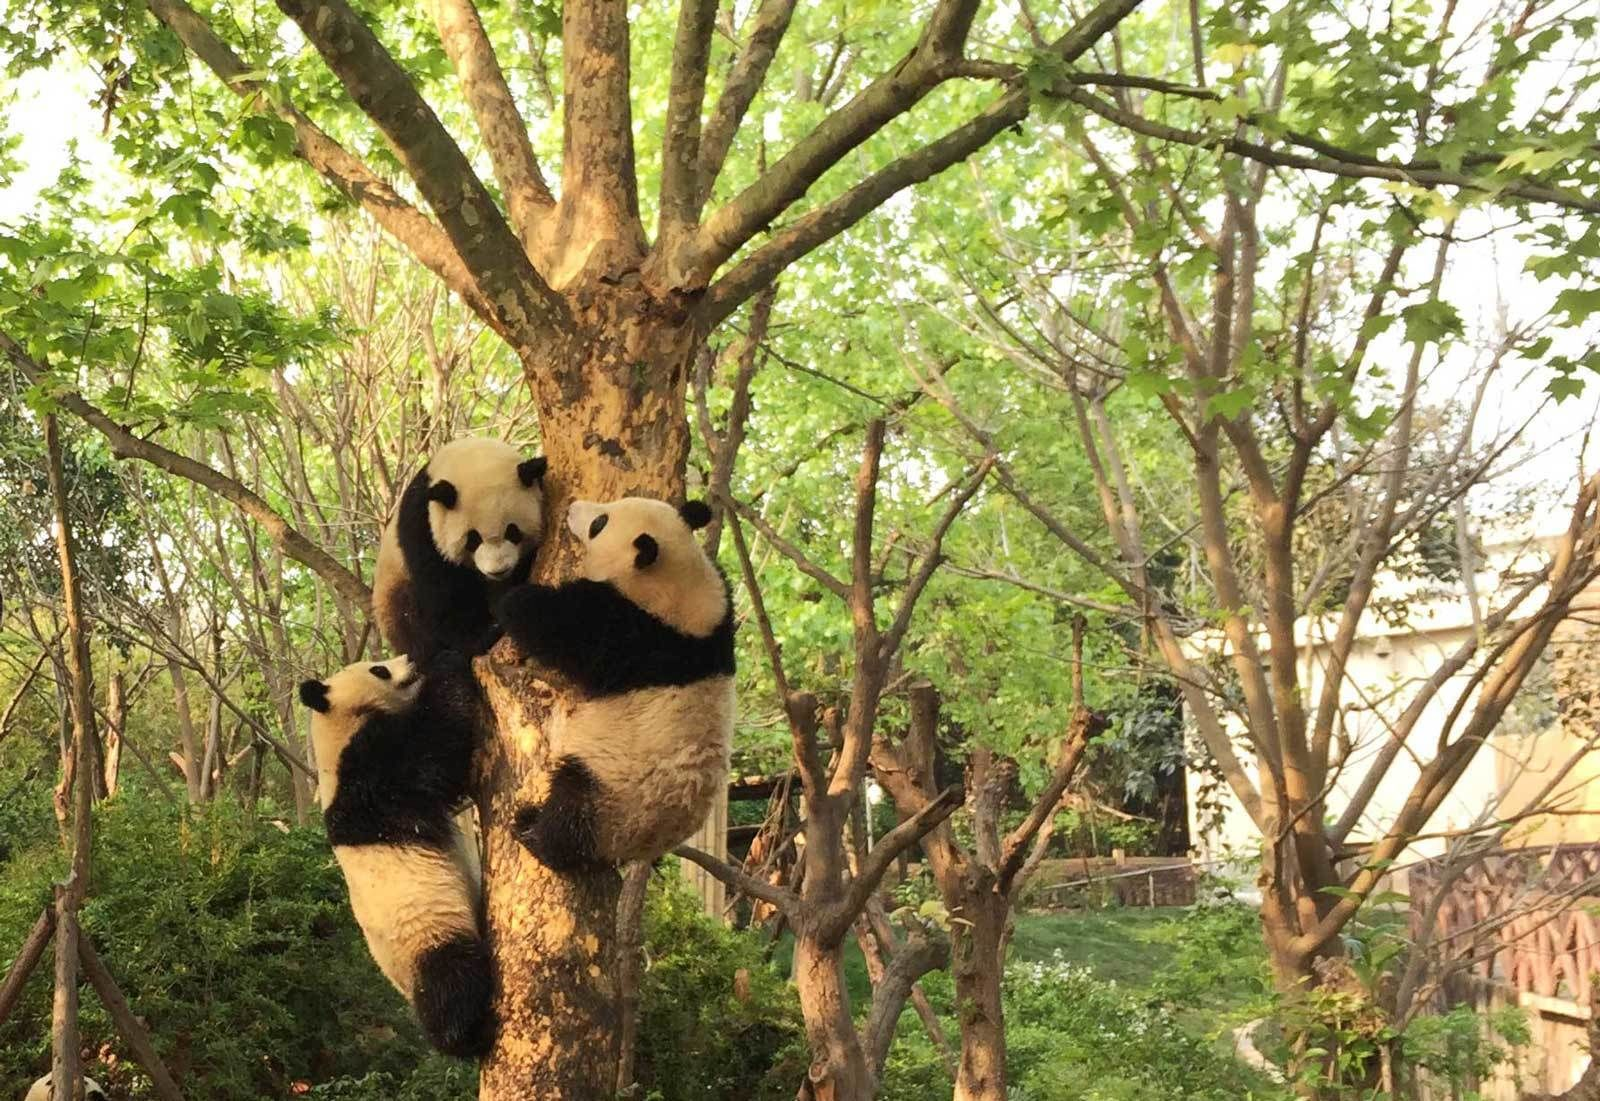 Half-Day Tour to Chengdu Research Base of Giant Panda Breeding